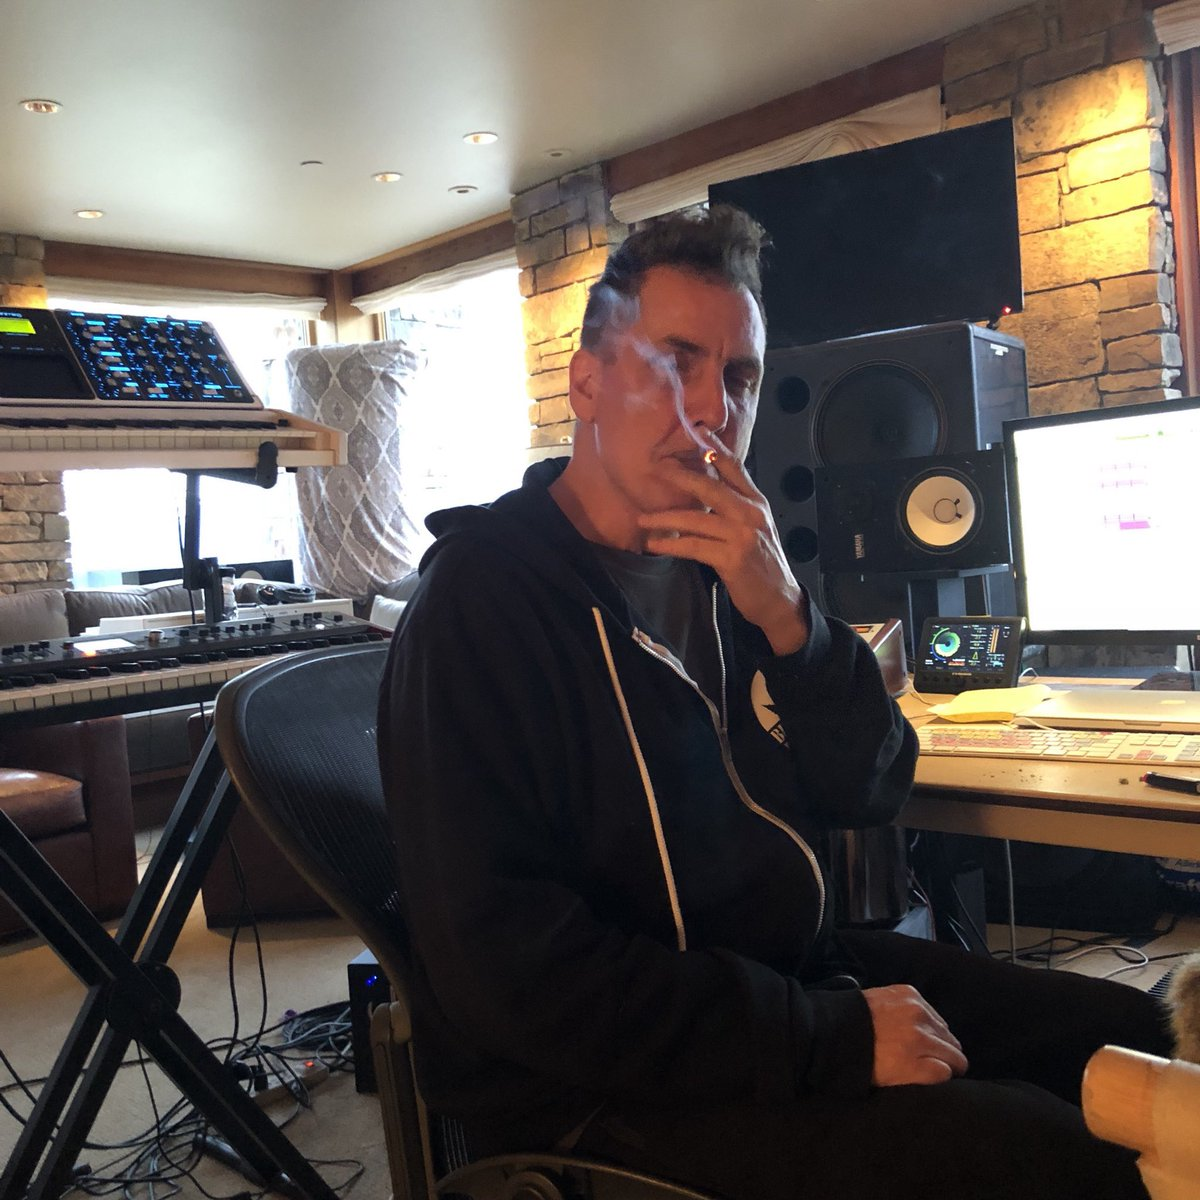 Long-time friend and collaborator of @kanyewest, producer/engineer/guitarist extraordinaire, the legendary @therealmikedean was of course in Wyoming manning the boards and wearing many hats to get these projects completed! #TheWyomingSessions #SoundCloud soundcloud.com/remindmetotell…